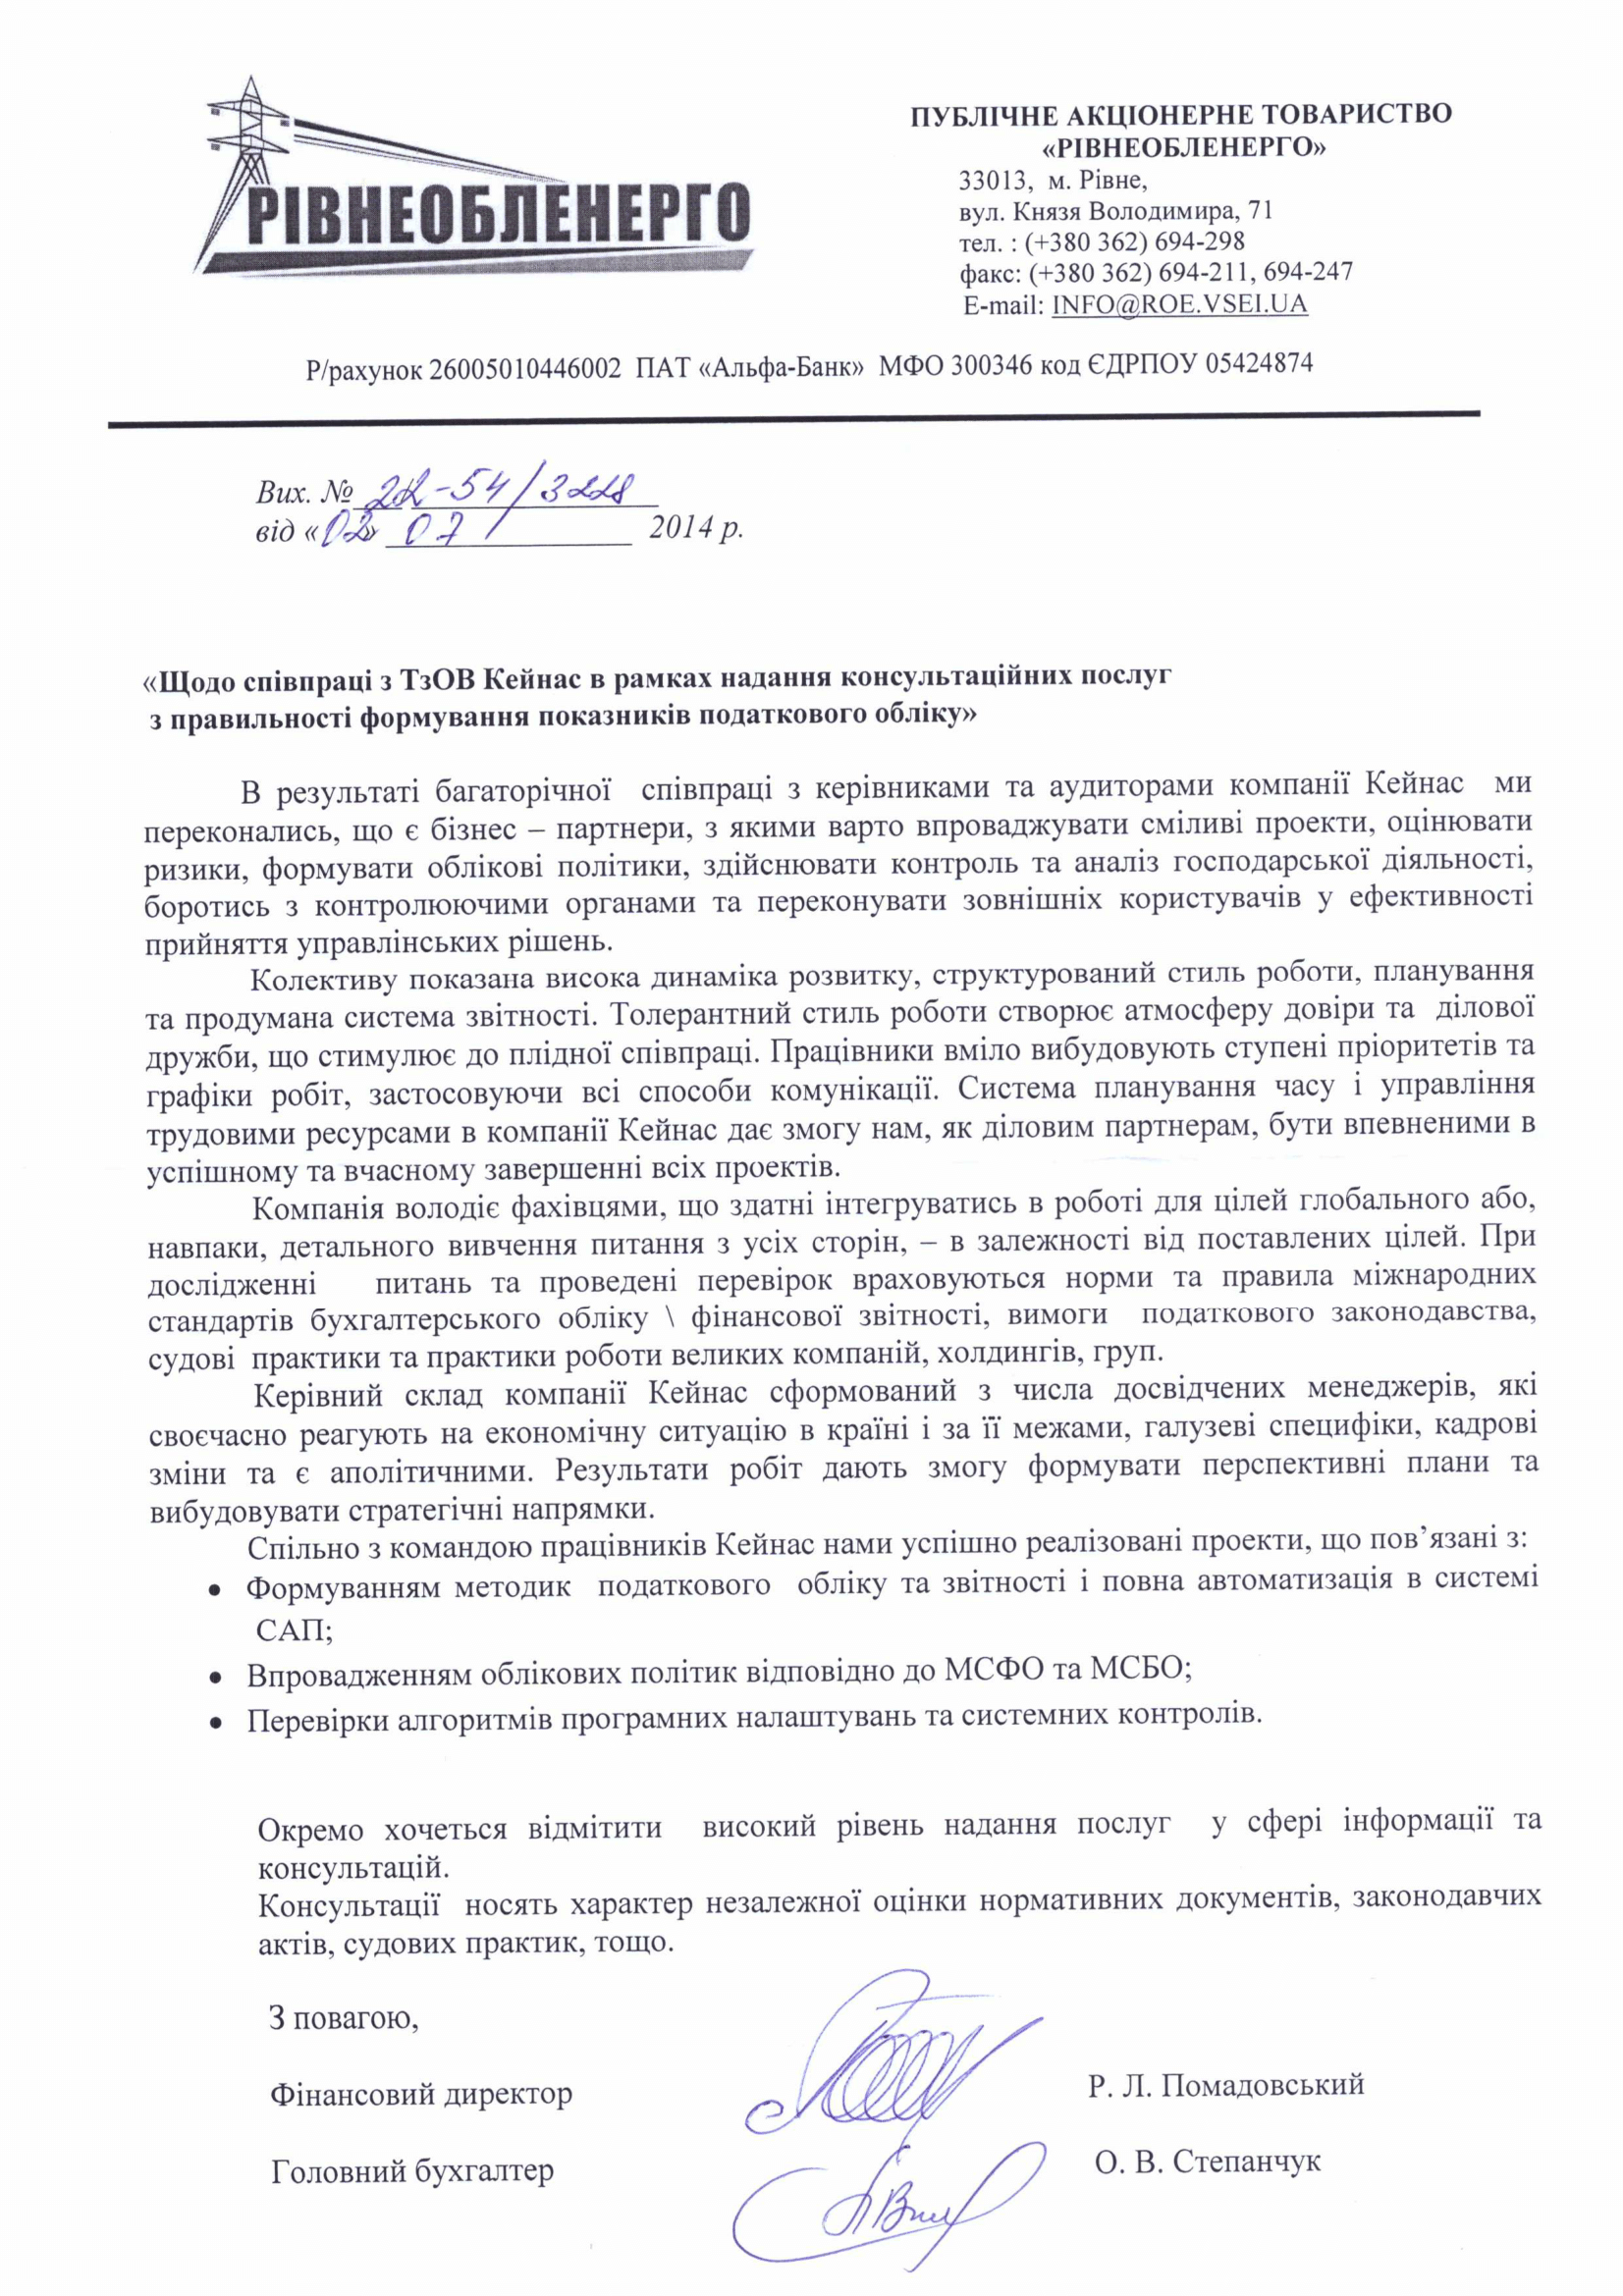 Format Of Noc Letter From Previous Auditor. 1  2380310 dc267d65 Audit and taxes